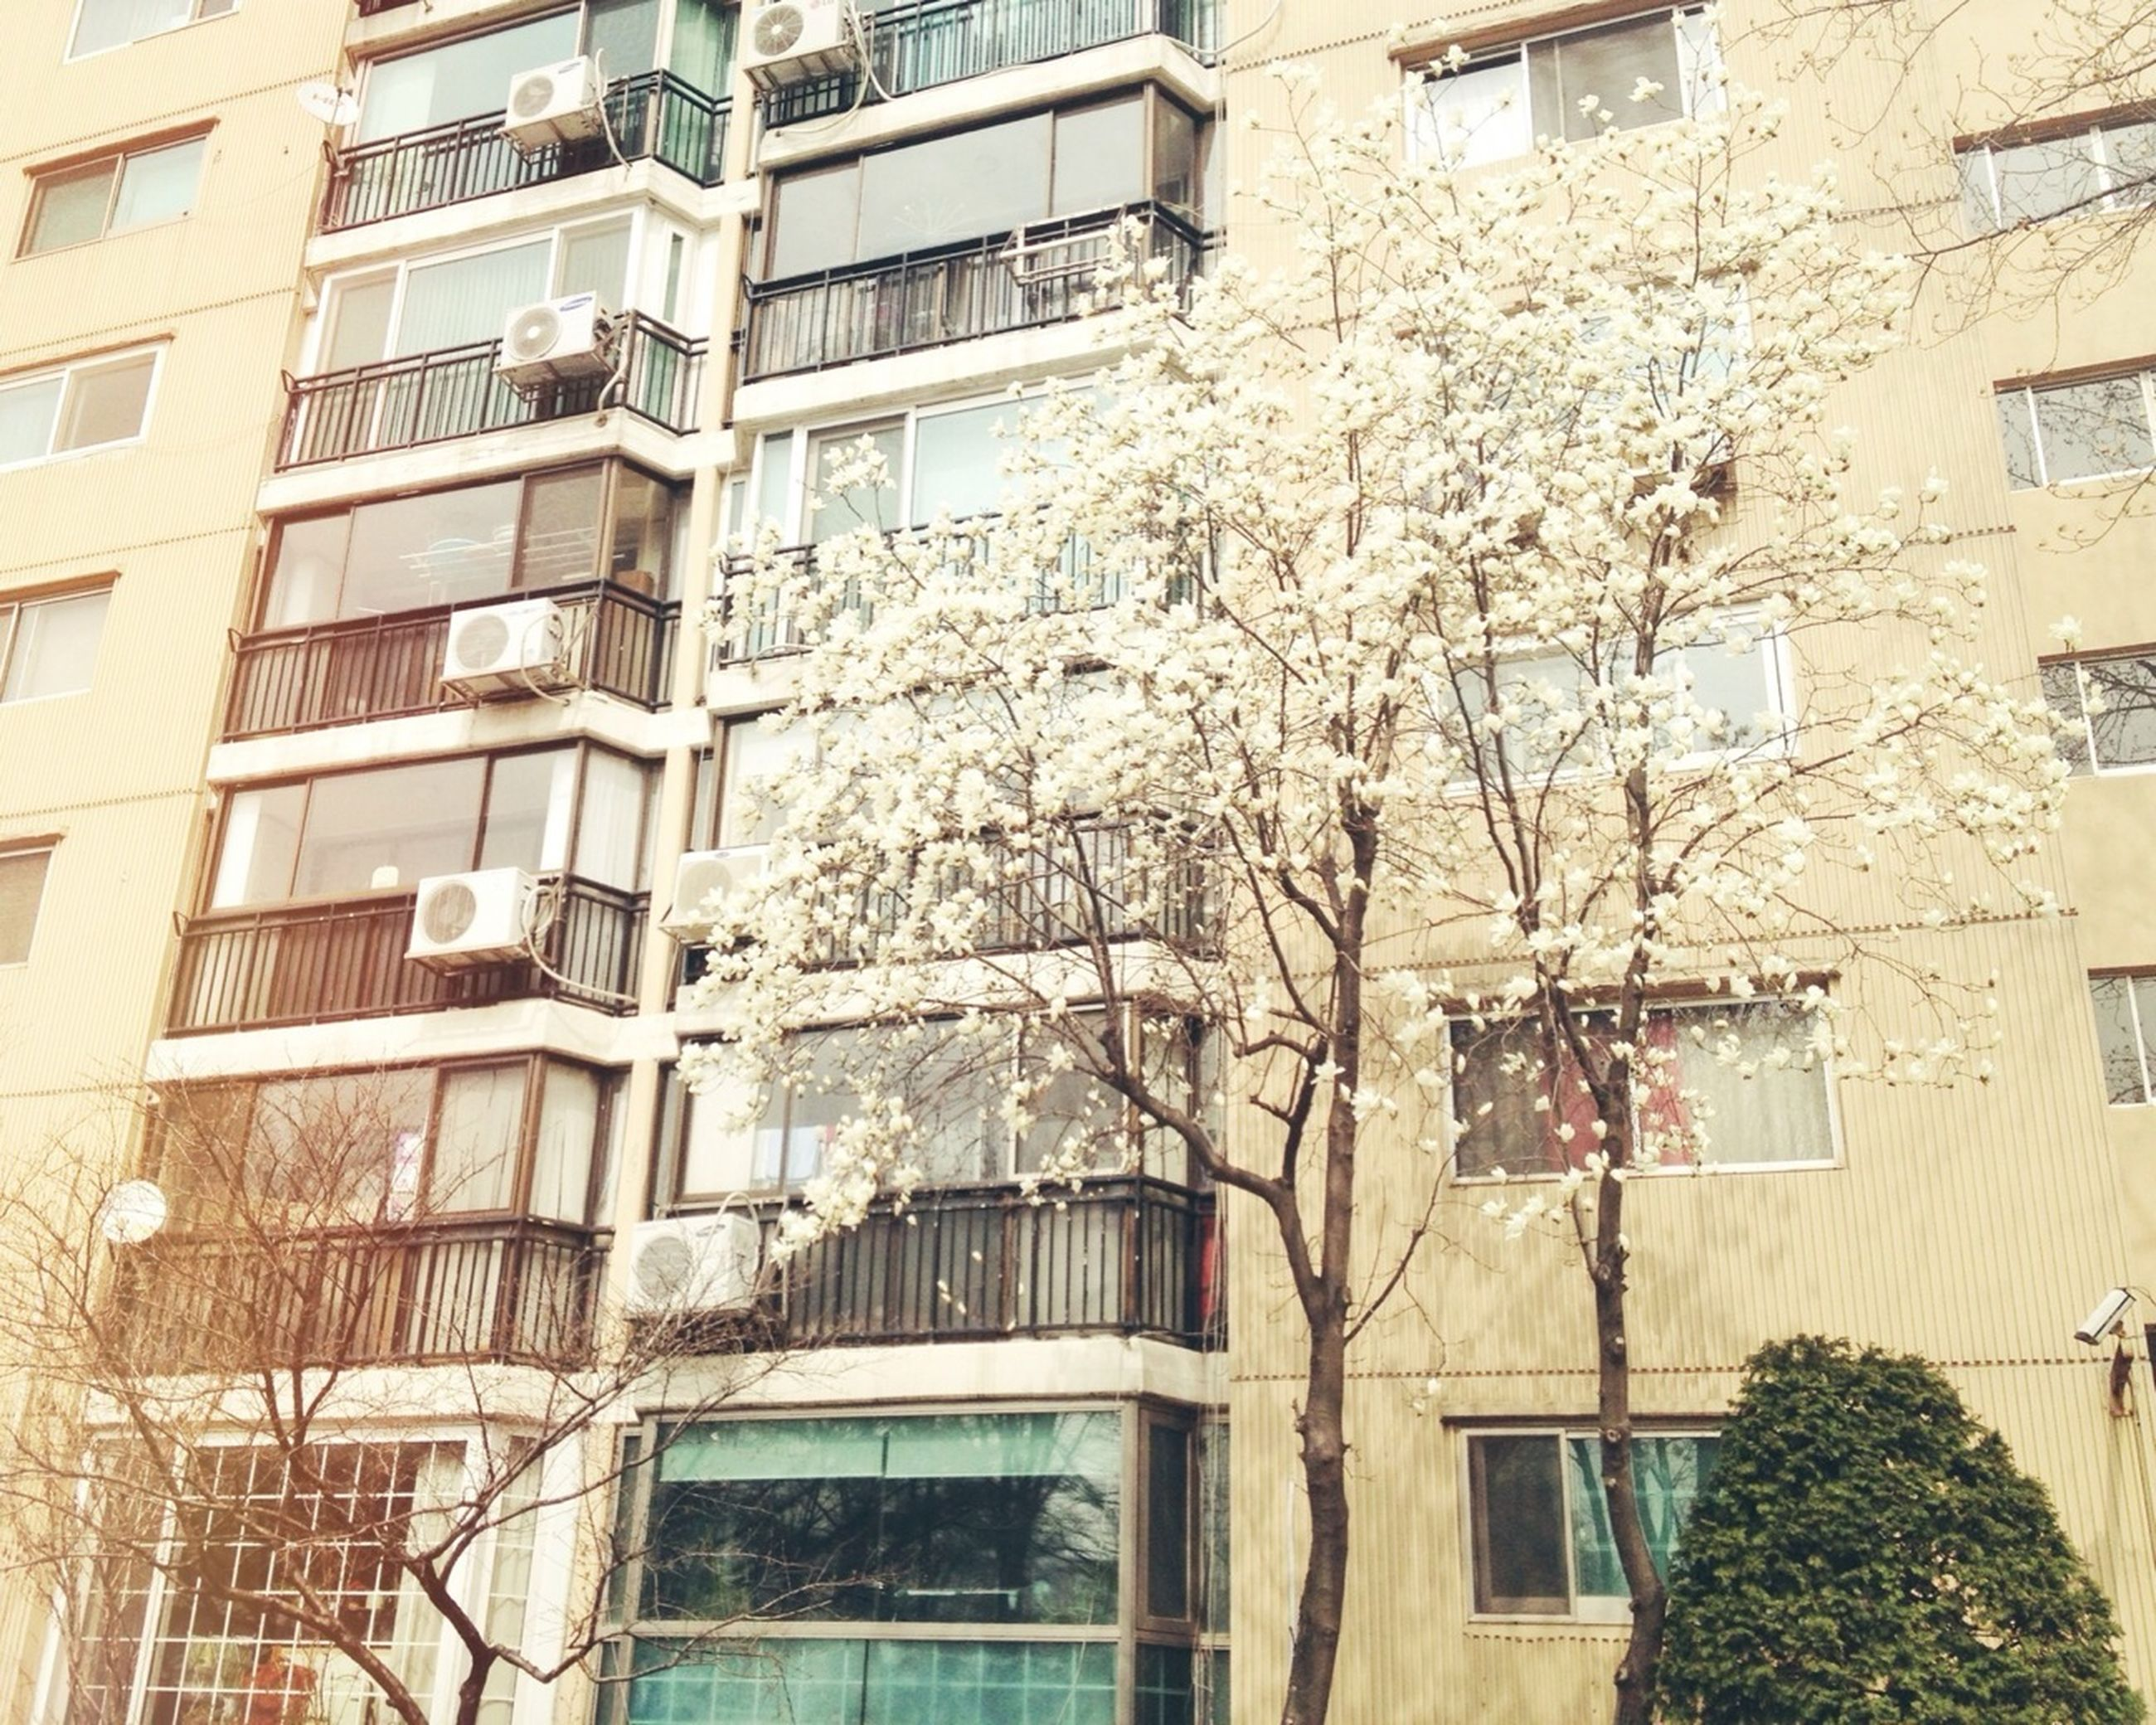 building exterior, architecture, built structure, window, residential building, residential structure, building, house, tree, low angle view, city, apartment, bare tree, balcony, day, outdoors, branch, glass - material, no people, brick wall